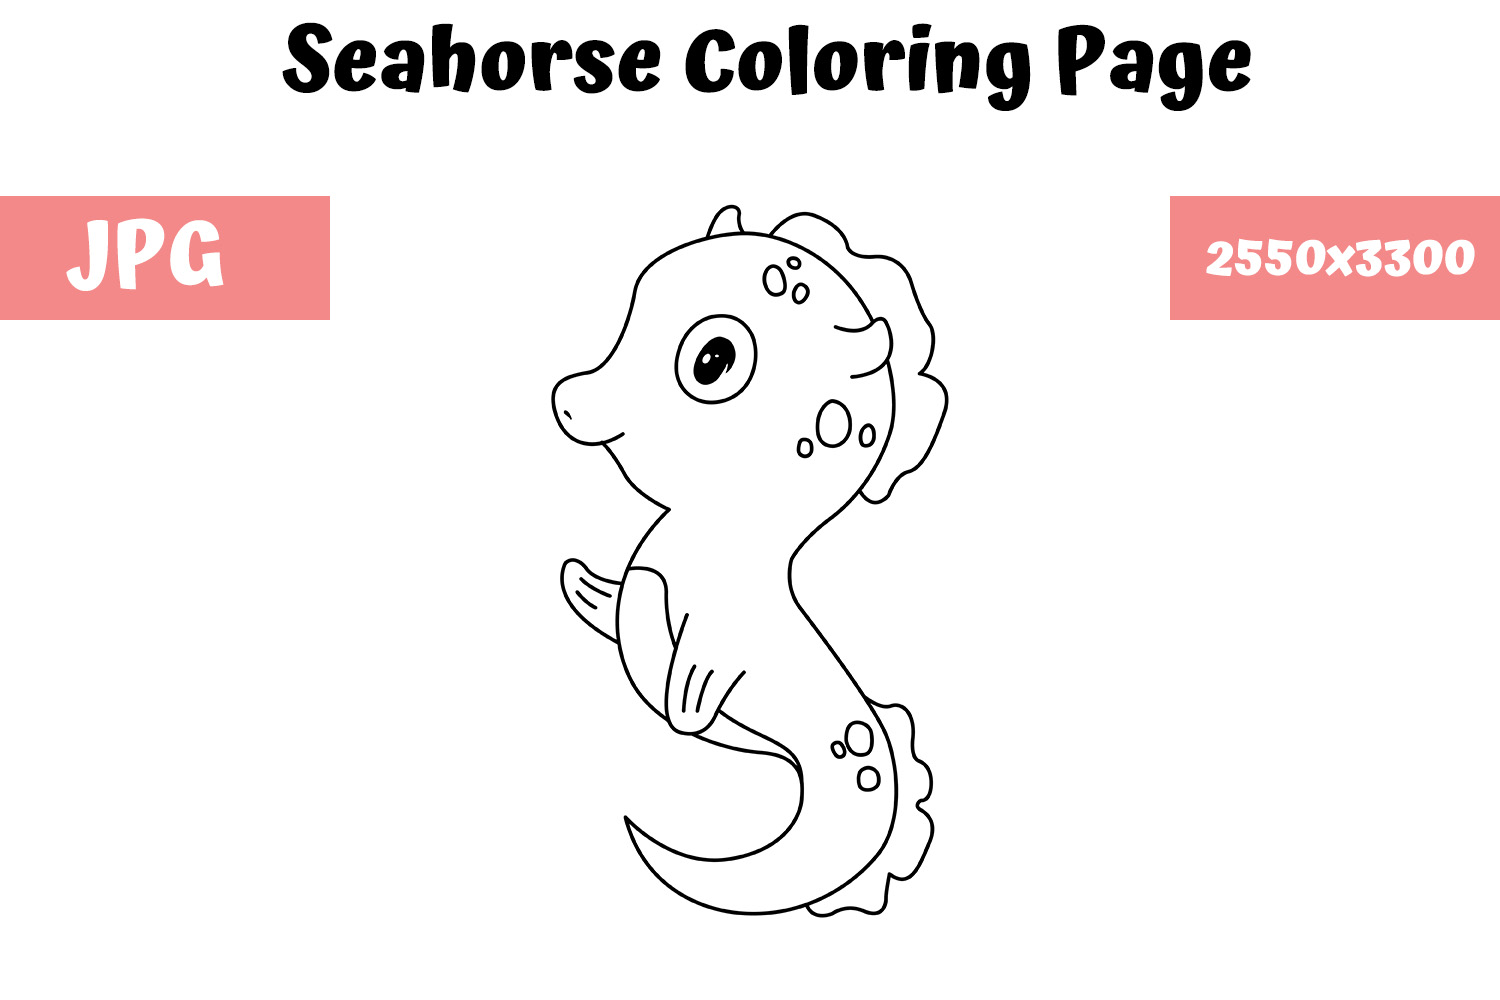 Seahorse Coloring Book Page For Kids Graphic By Mybeautifulfiles Creative Fabrica